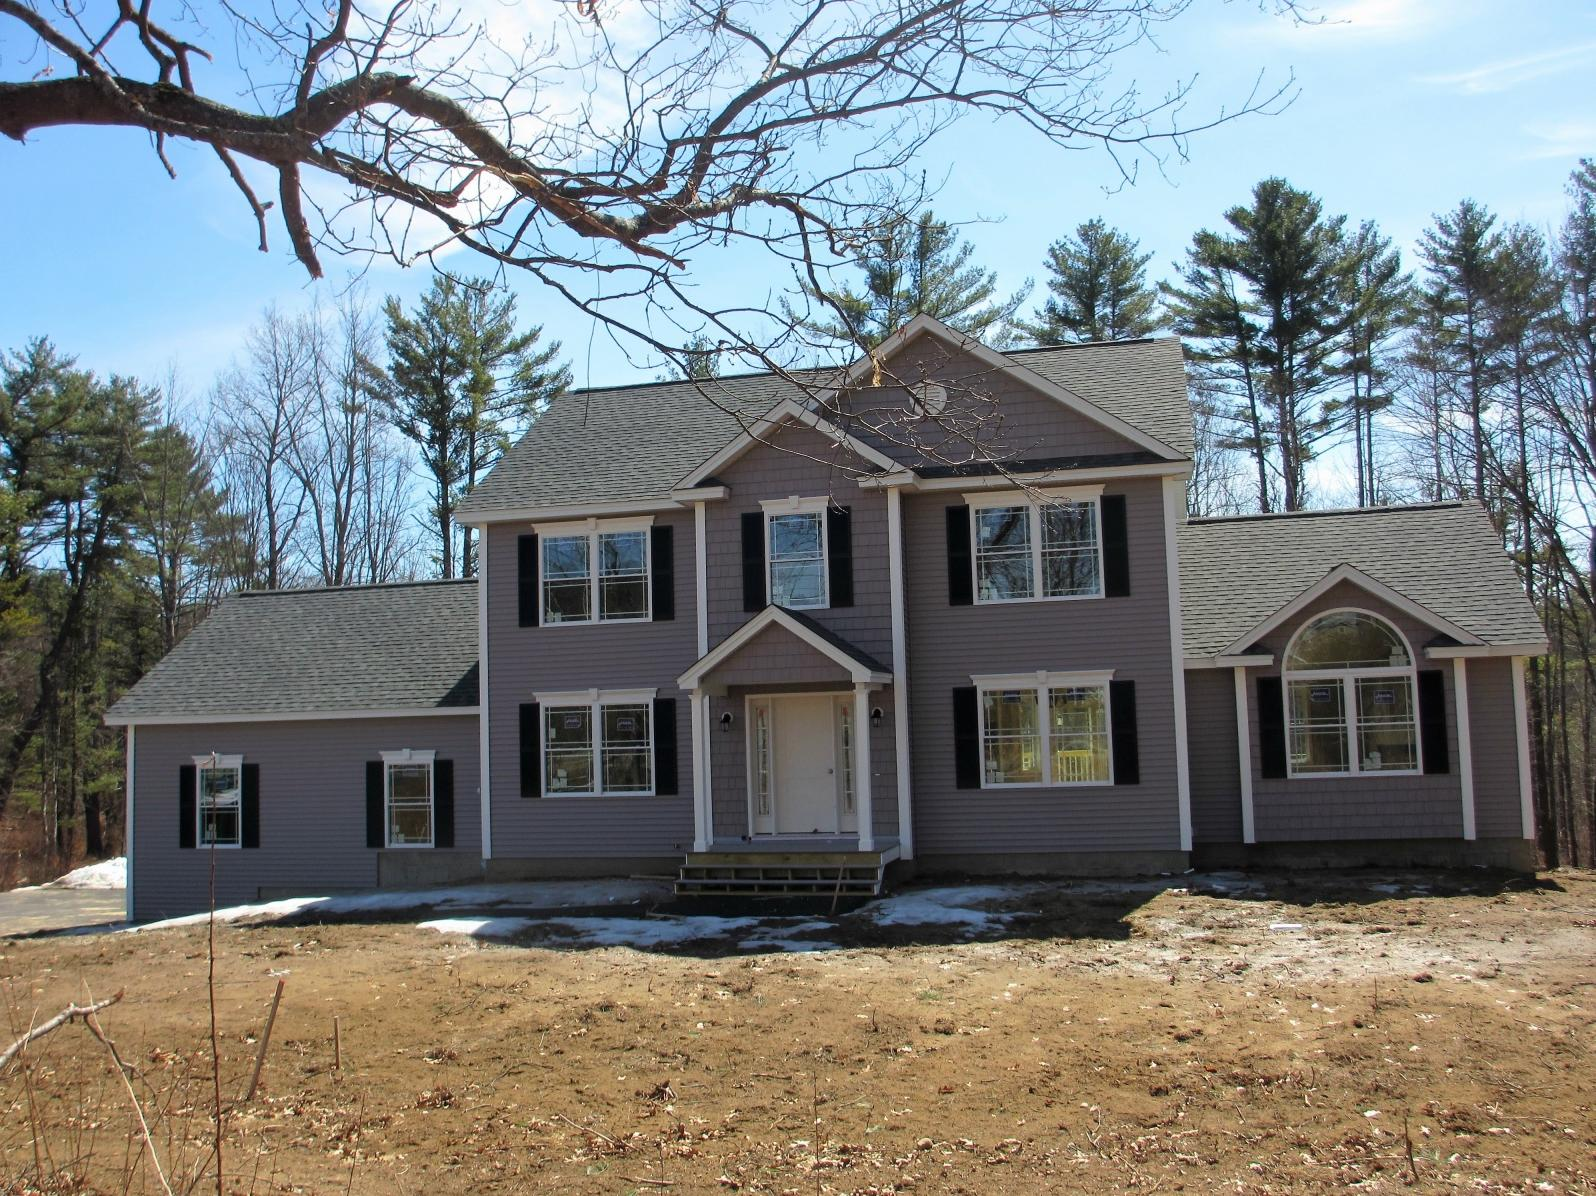 Photo of 126 SNOW POND RD CONCORD NH 03301